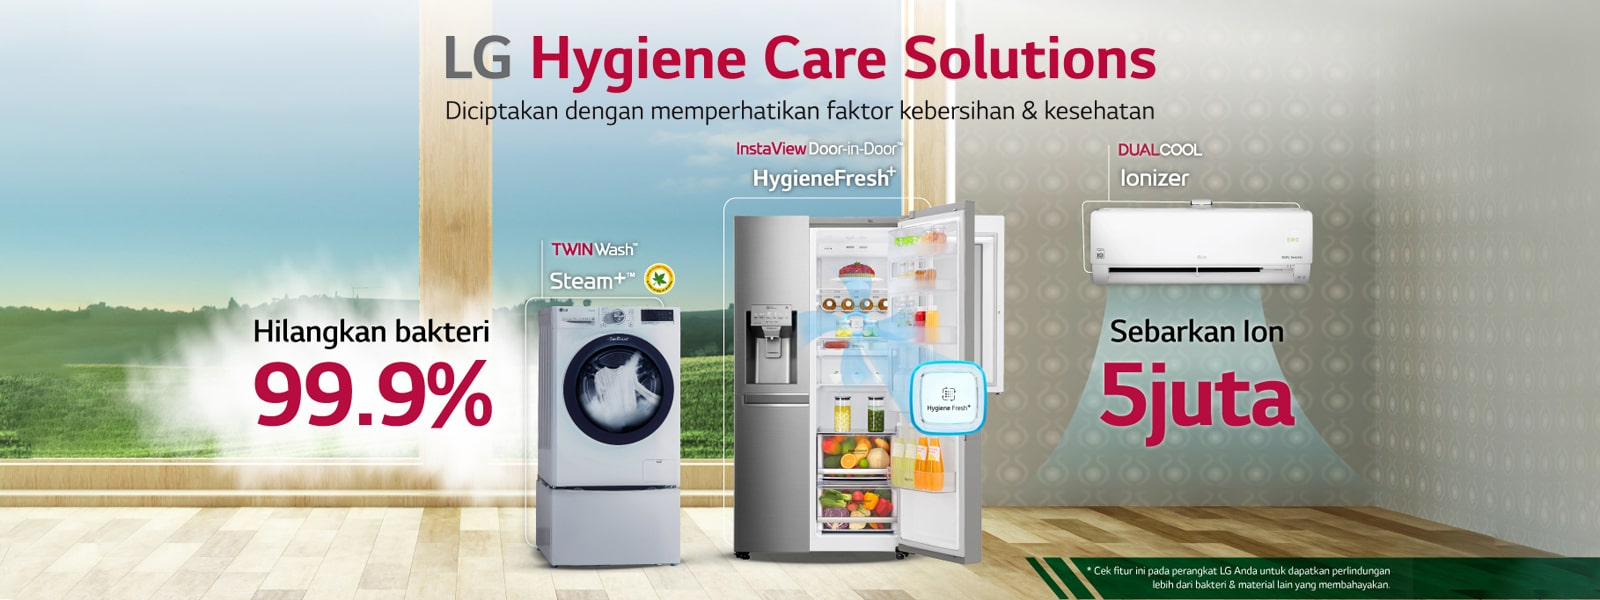 1600X800_LG Hygiene Care Solutions_alt3-01 (5)